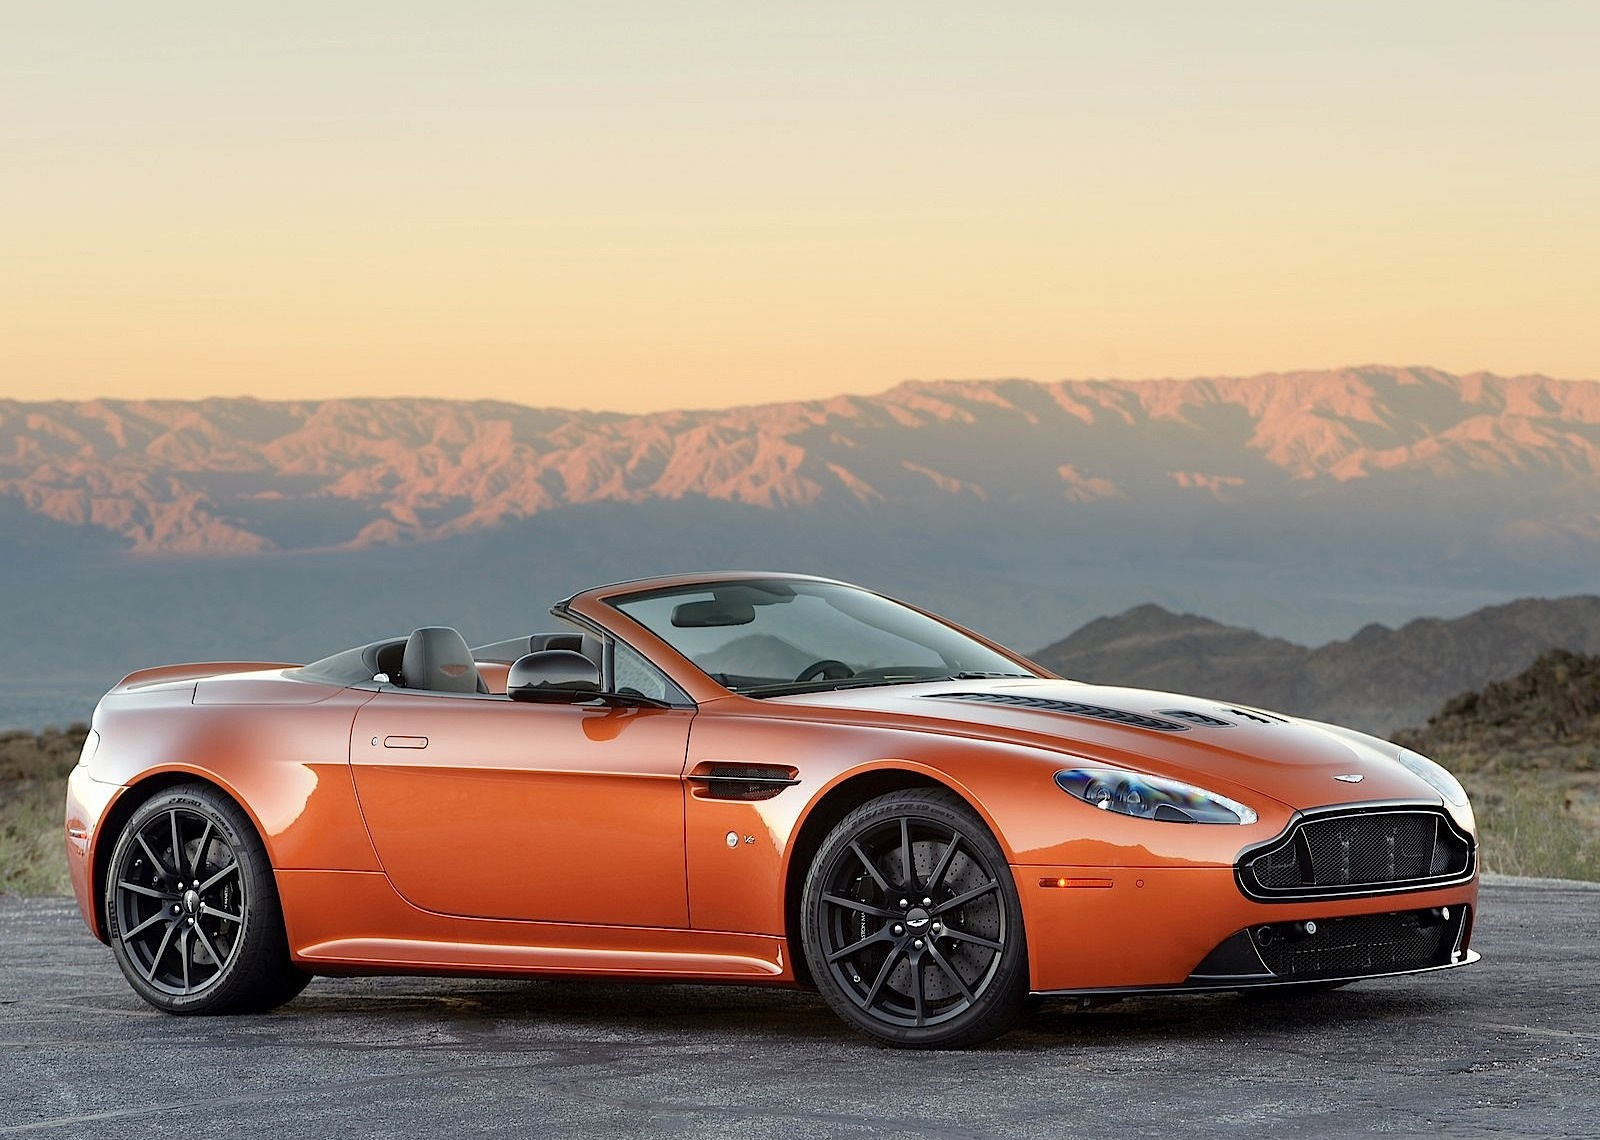 aston martin v12 vantage s roadster specs 2014 2015 2016 2017 2018 autoevolution. Black Bedroom Furniture Sets. Home Design Ideas